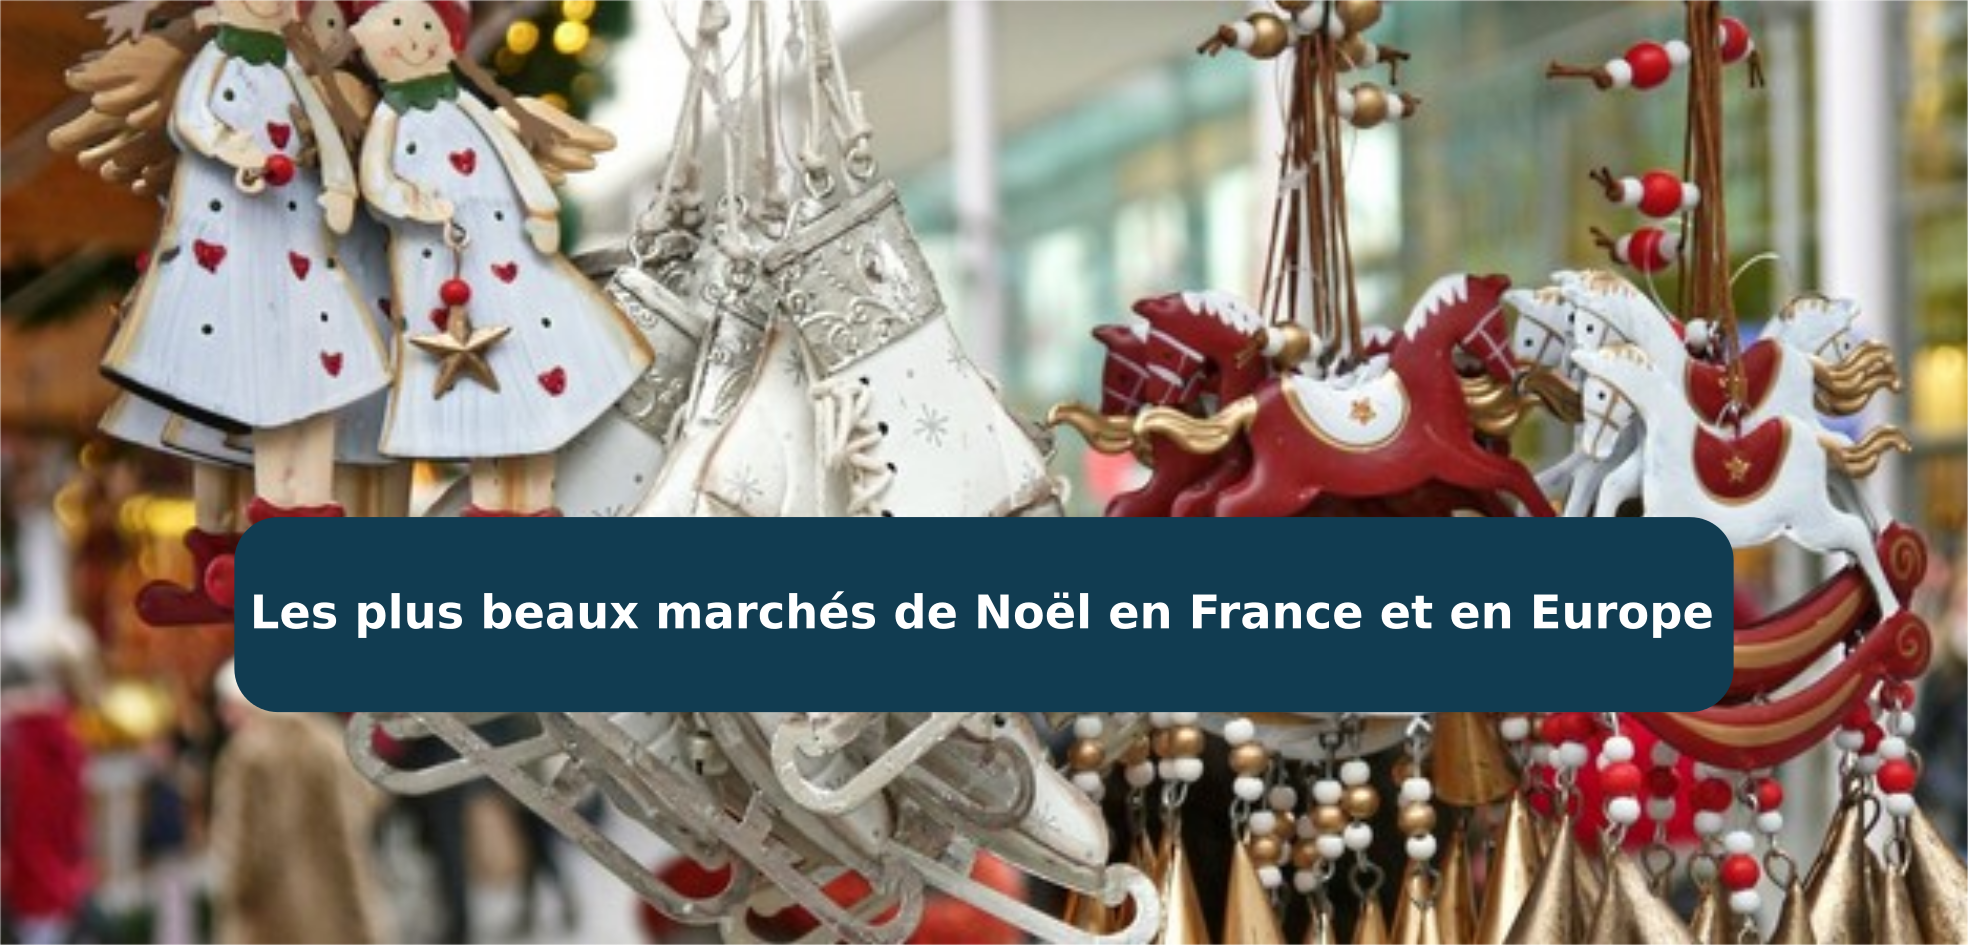 Les plus beaux march s de no l en france et en europe 2016 comparabus blog - Plus beau marche de noel ...